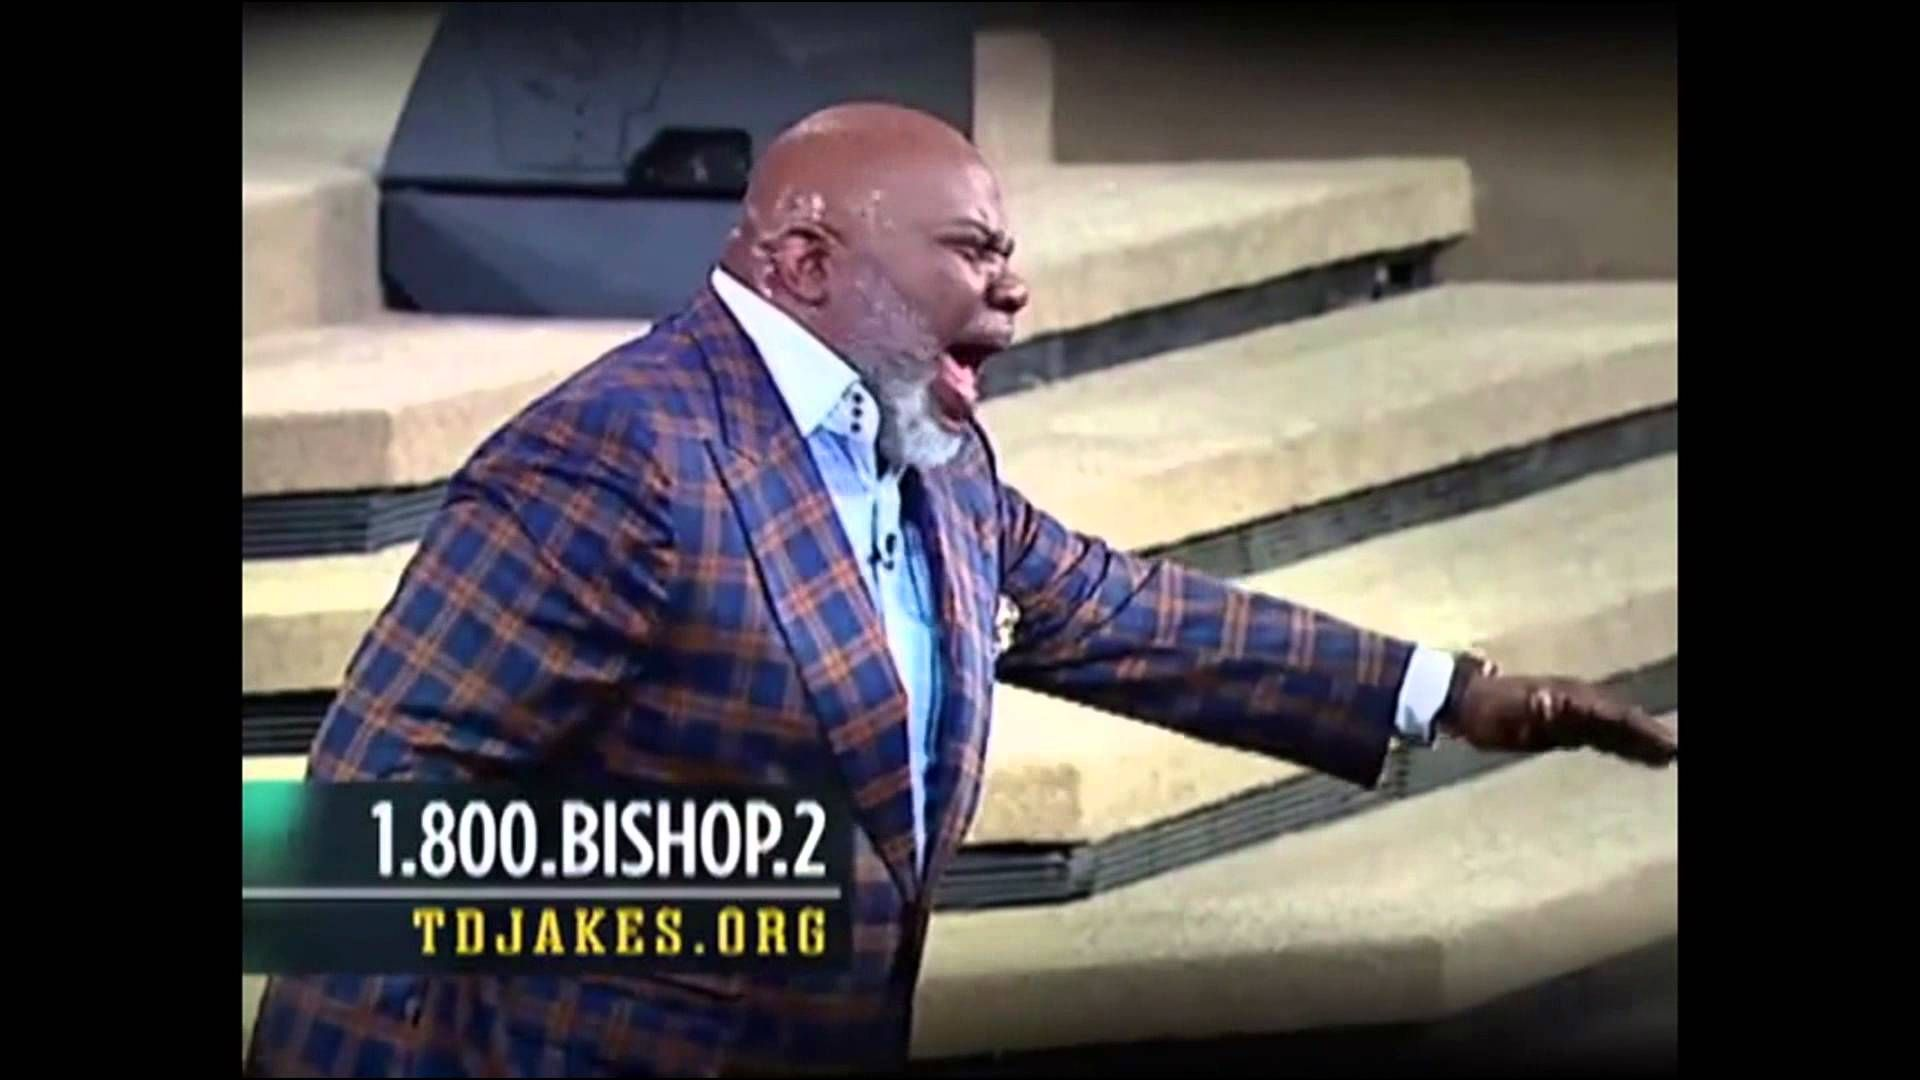 Pin on td jakes 2016